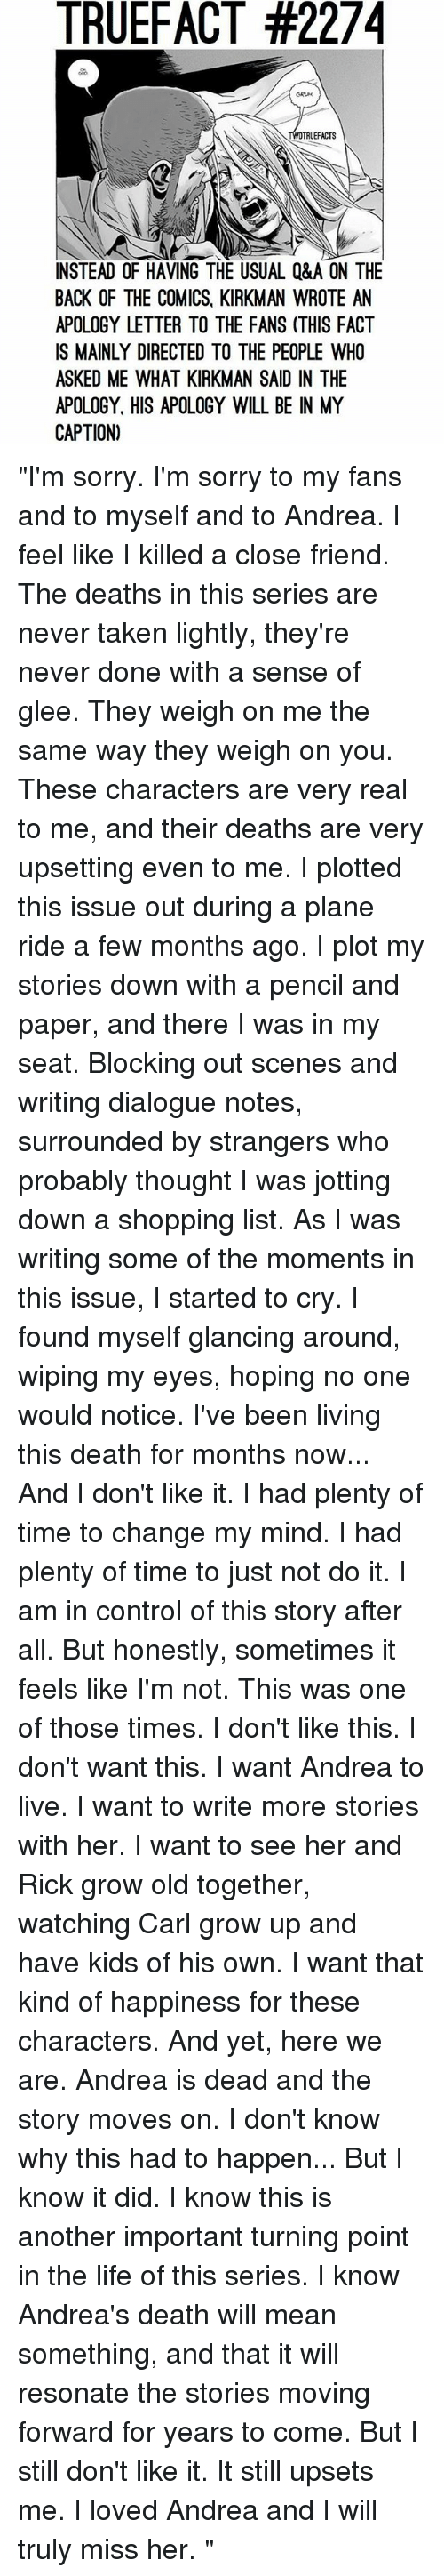 TRUEFACT #2274 UEFACTS INSTEAD OF HAVING THE USUAL Q&A ON THE BACK OF THE COMICS KIRKMAN WROTE AN APOLOGY LETTER TO THE FANS THIS FACT IS MAINLY ...